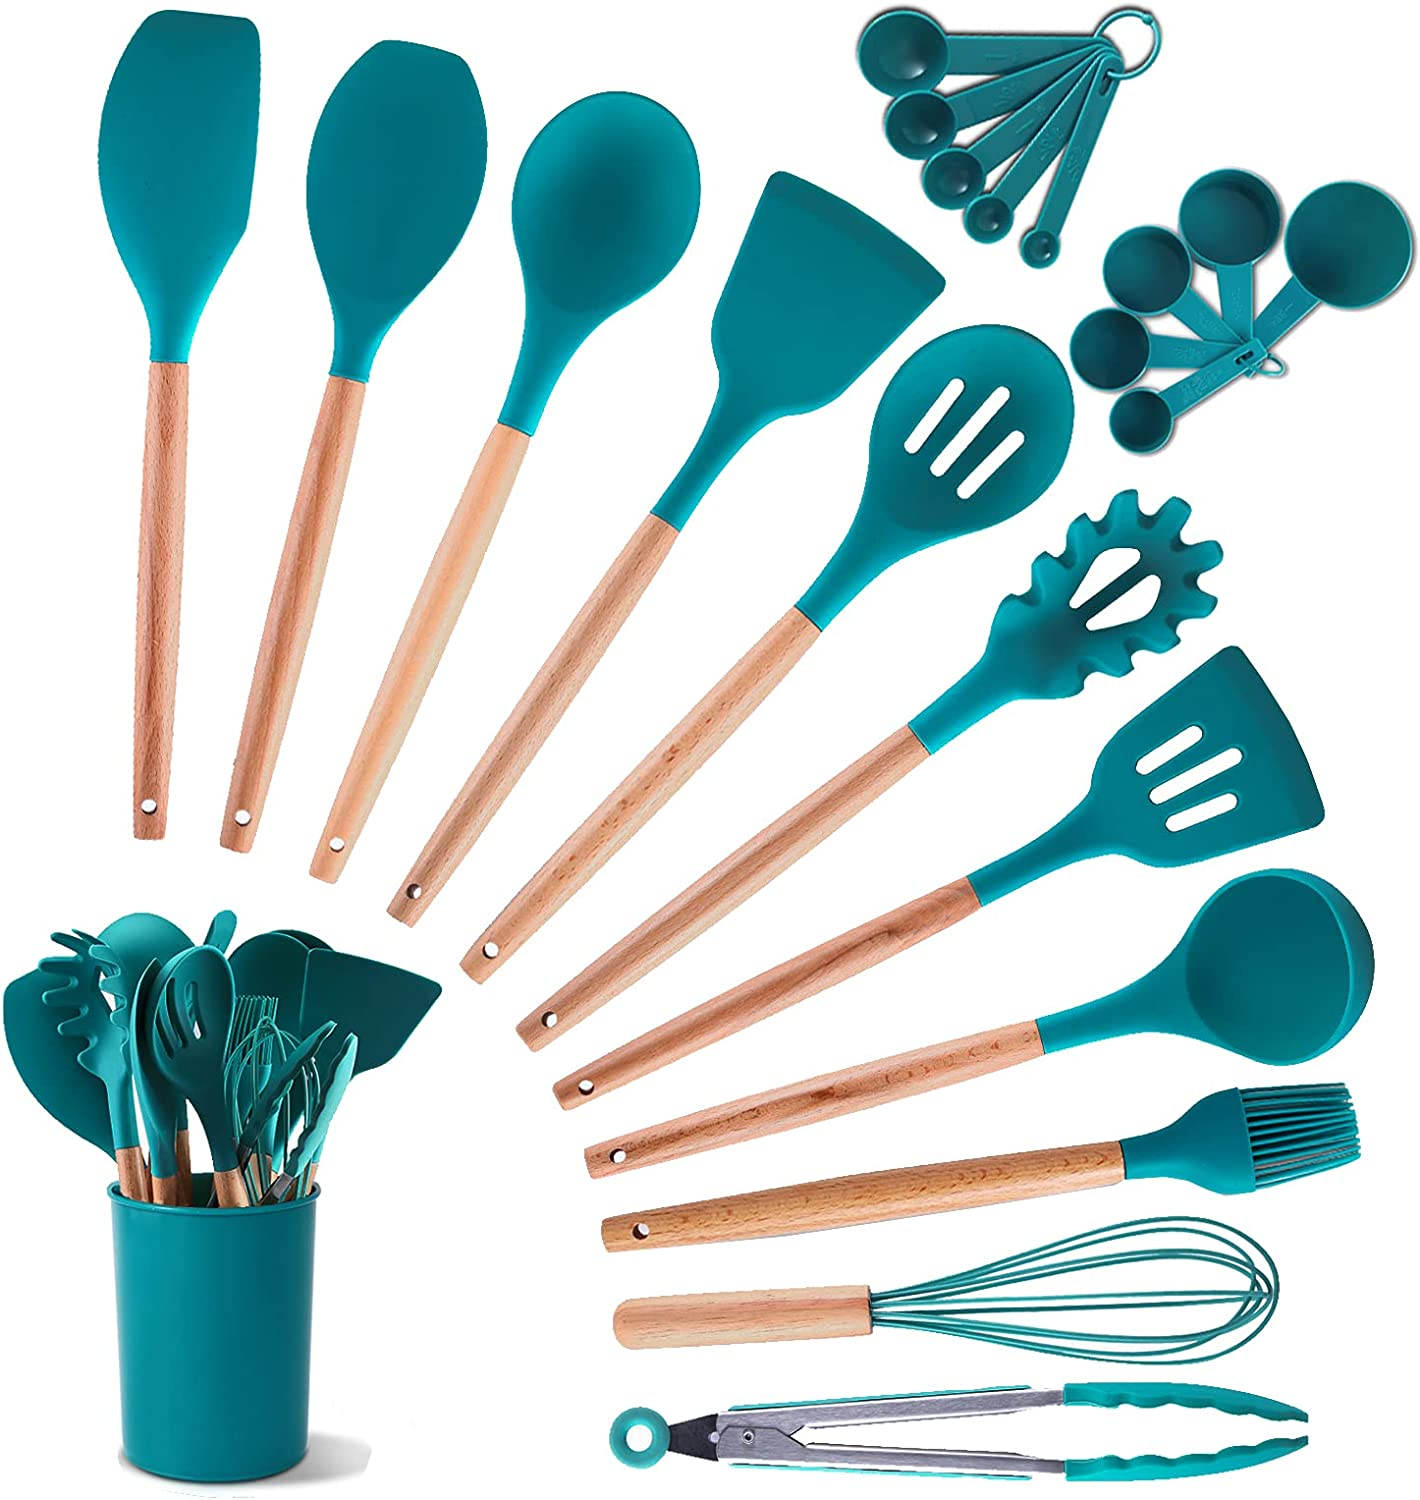 Amazon Com Coplib Silicone Cooking Utensils Set 22pcs Kitchen Utensil With Holder Non Stick Cookware Heat Resistant Gadgets Gift Blue Dining